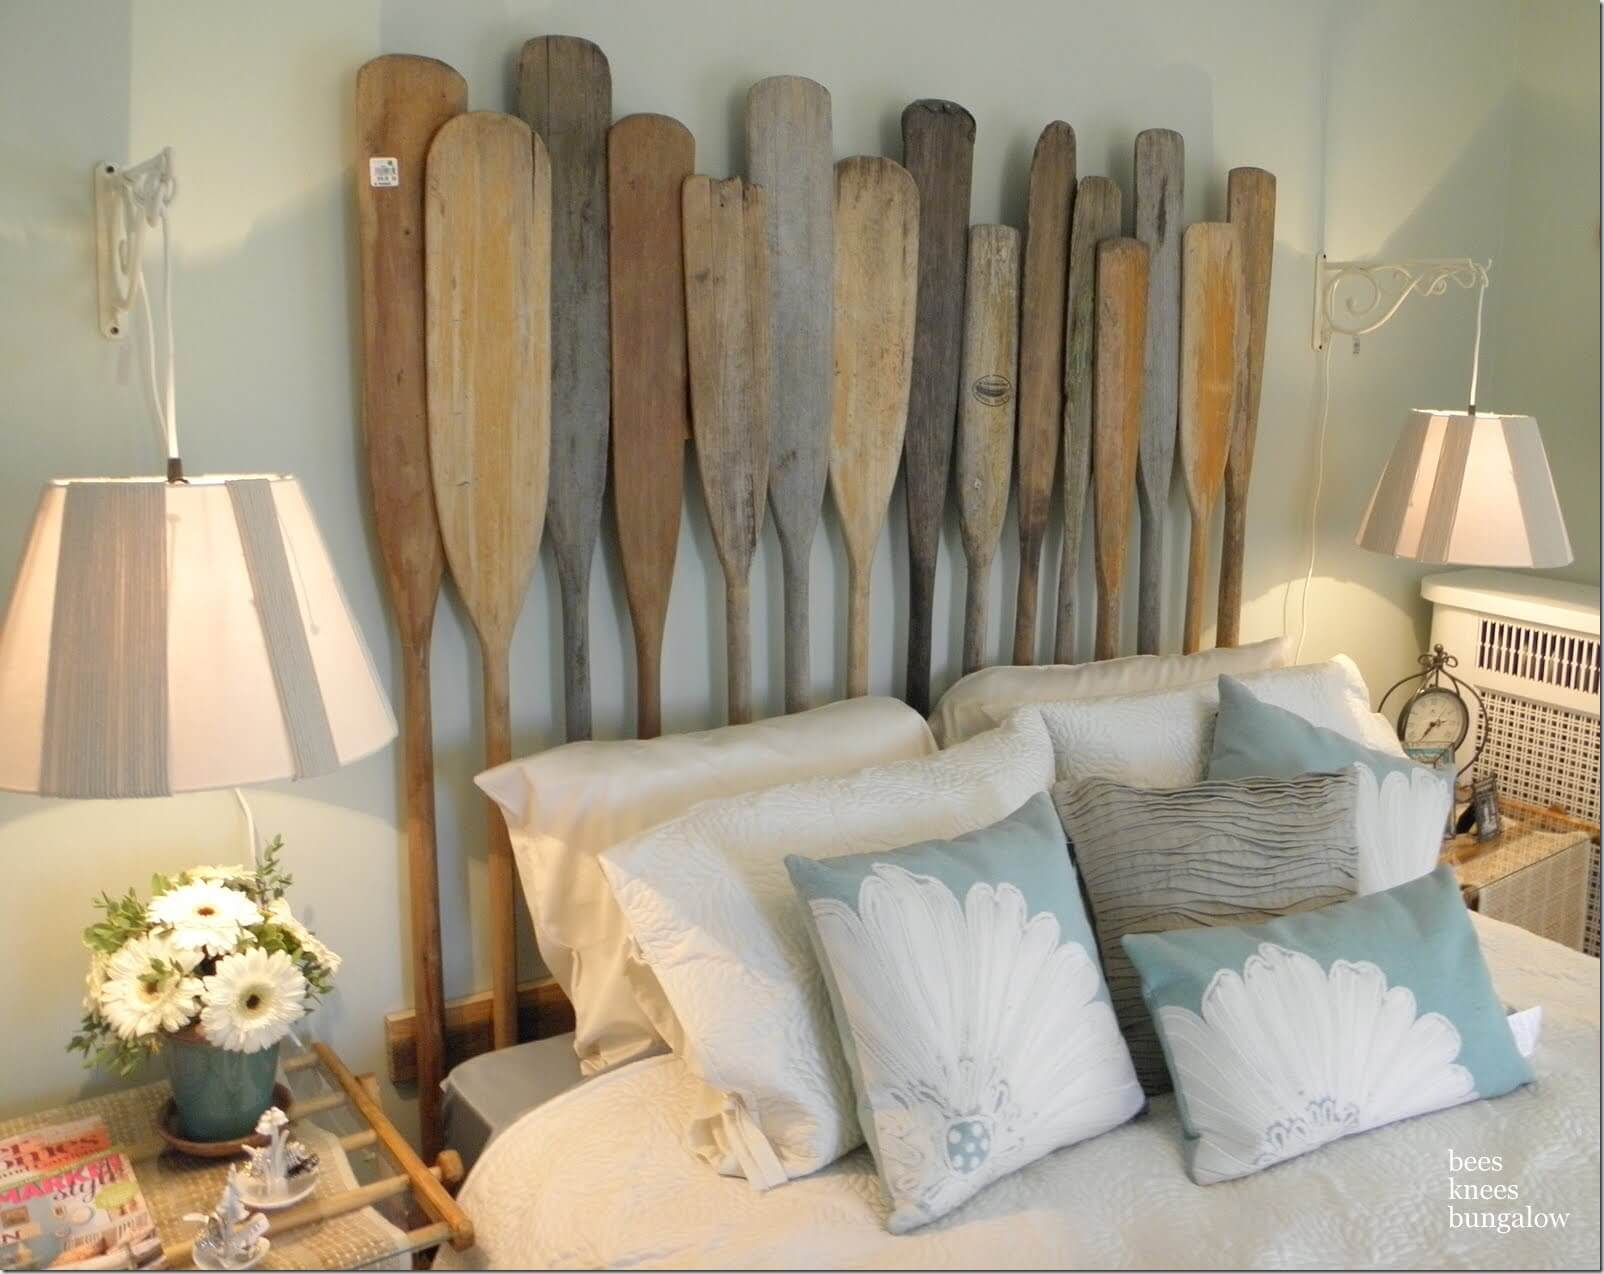 A Nautical Headboard with Vintage Oars